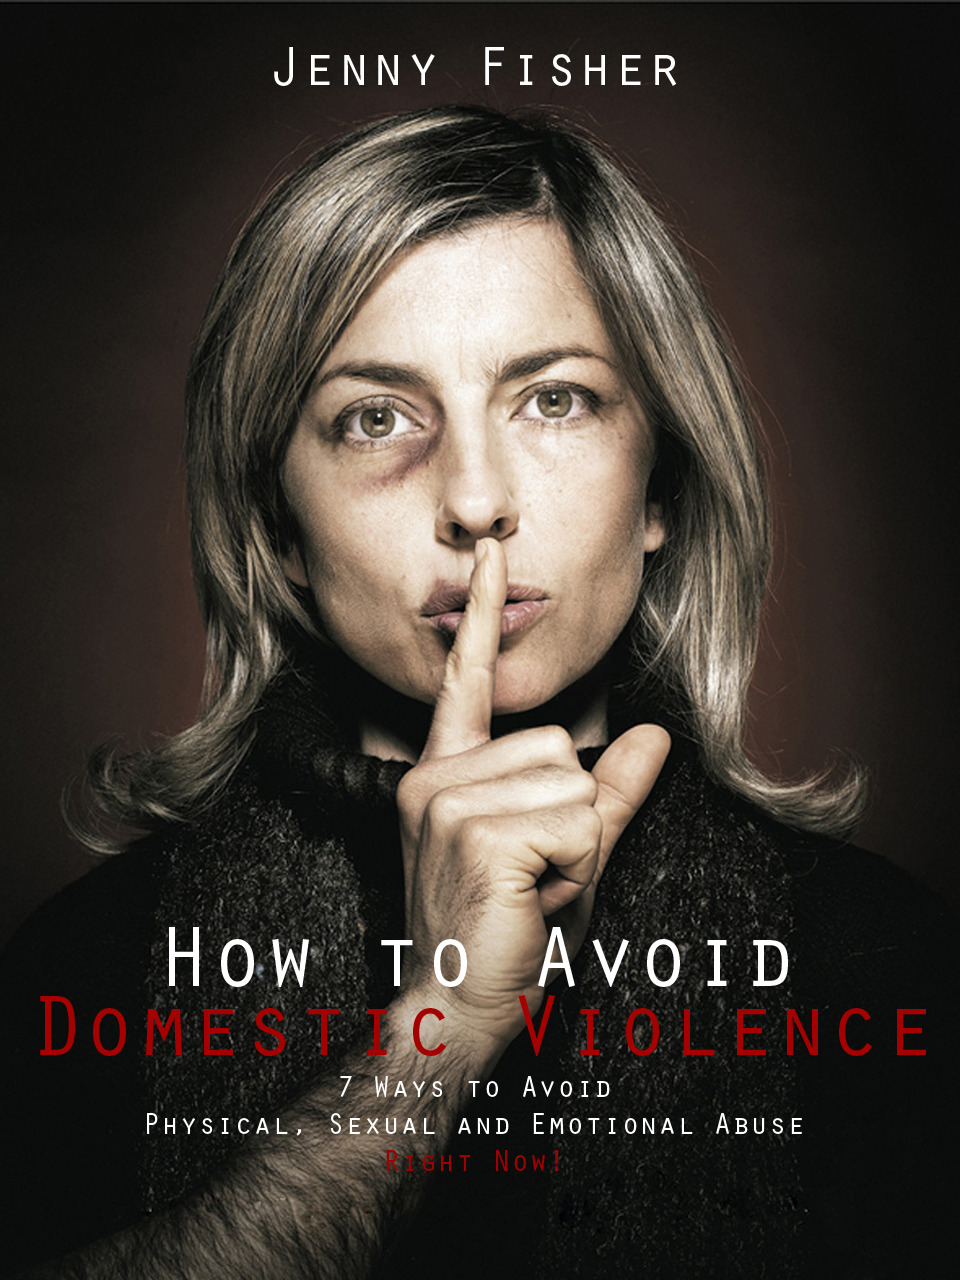 How to Avoid Domestic Violence: 7 Ways to Avoid Physical, Sexual and Emotional Abuse-Right Now!